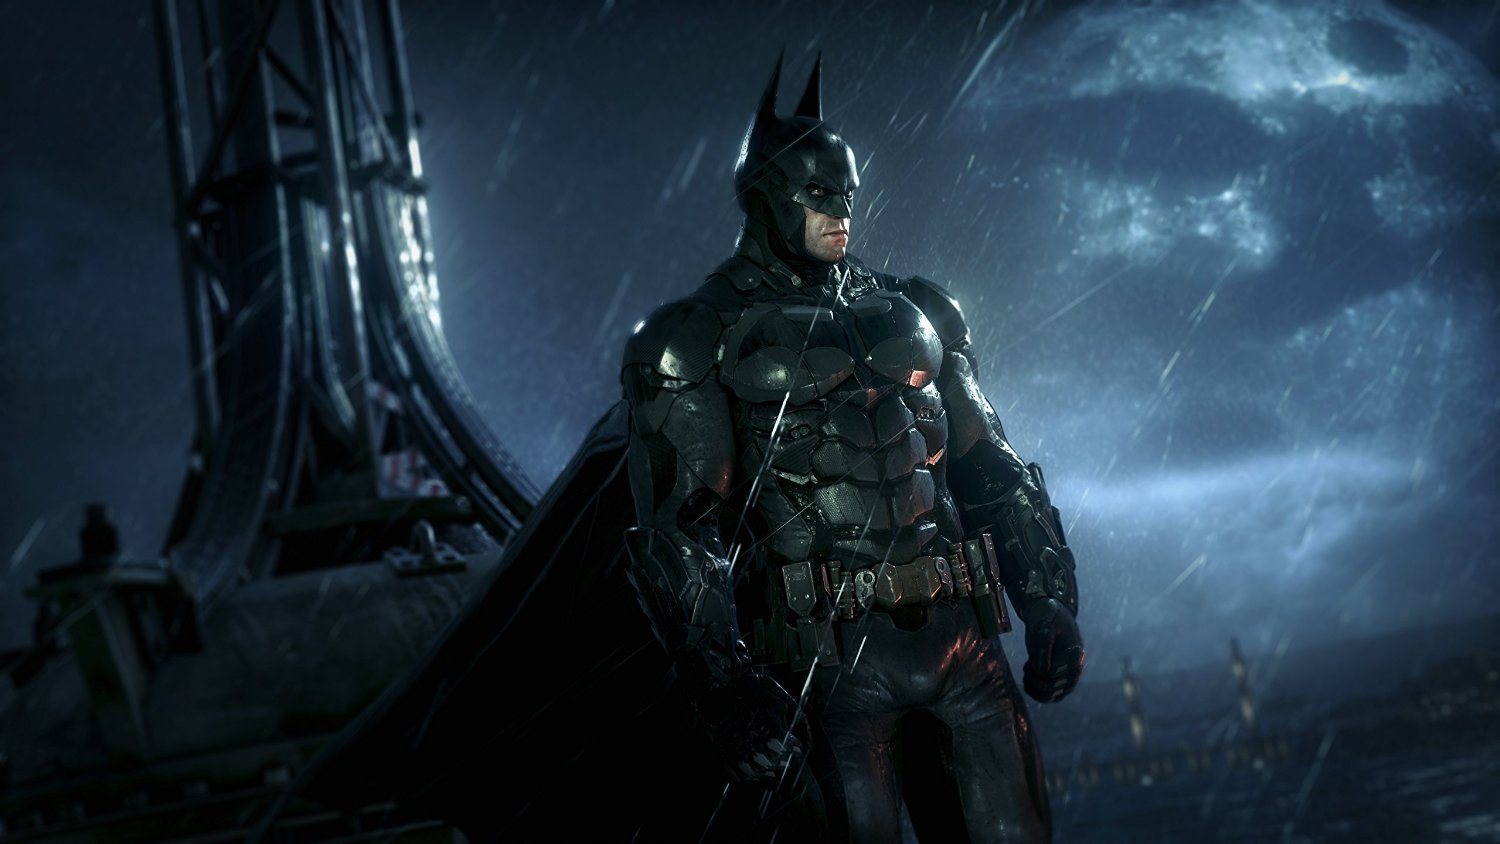 Batman: Arkham Knight Trailers and Gameplay Videos